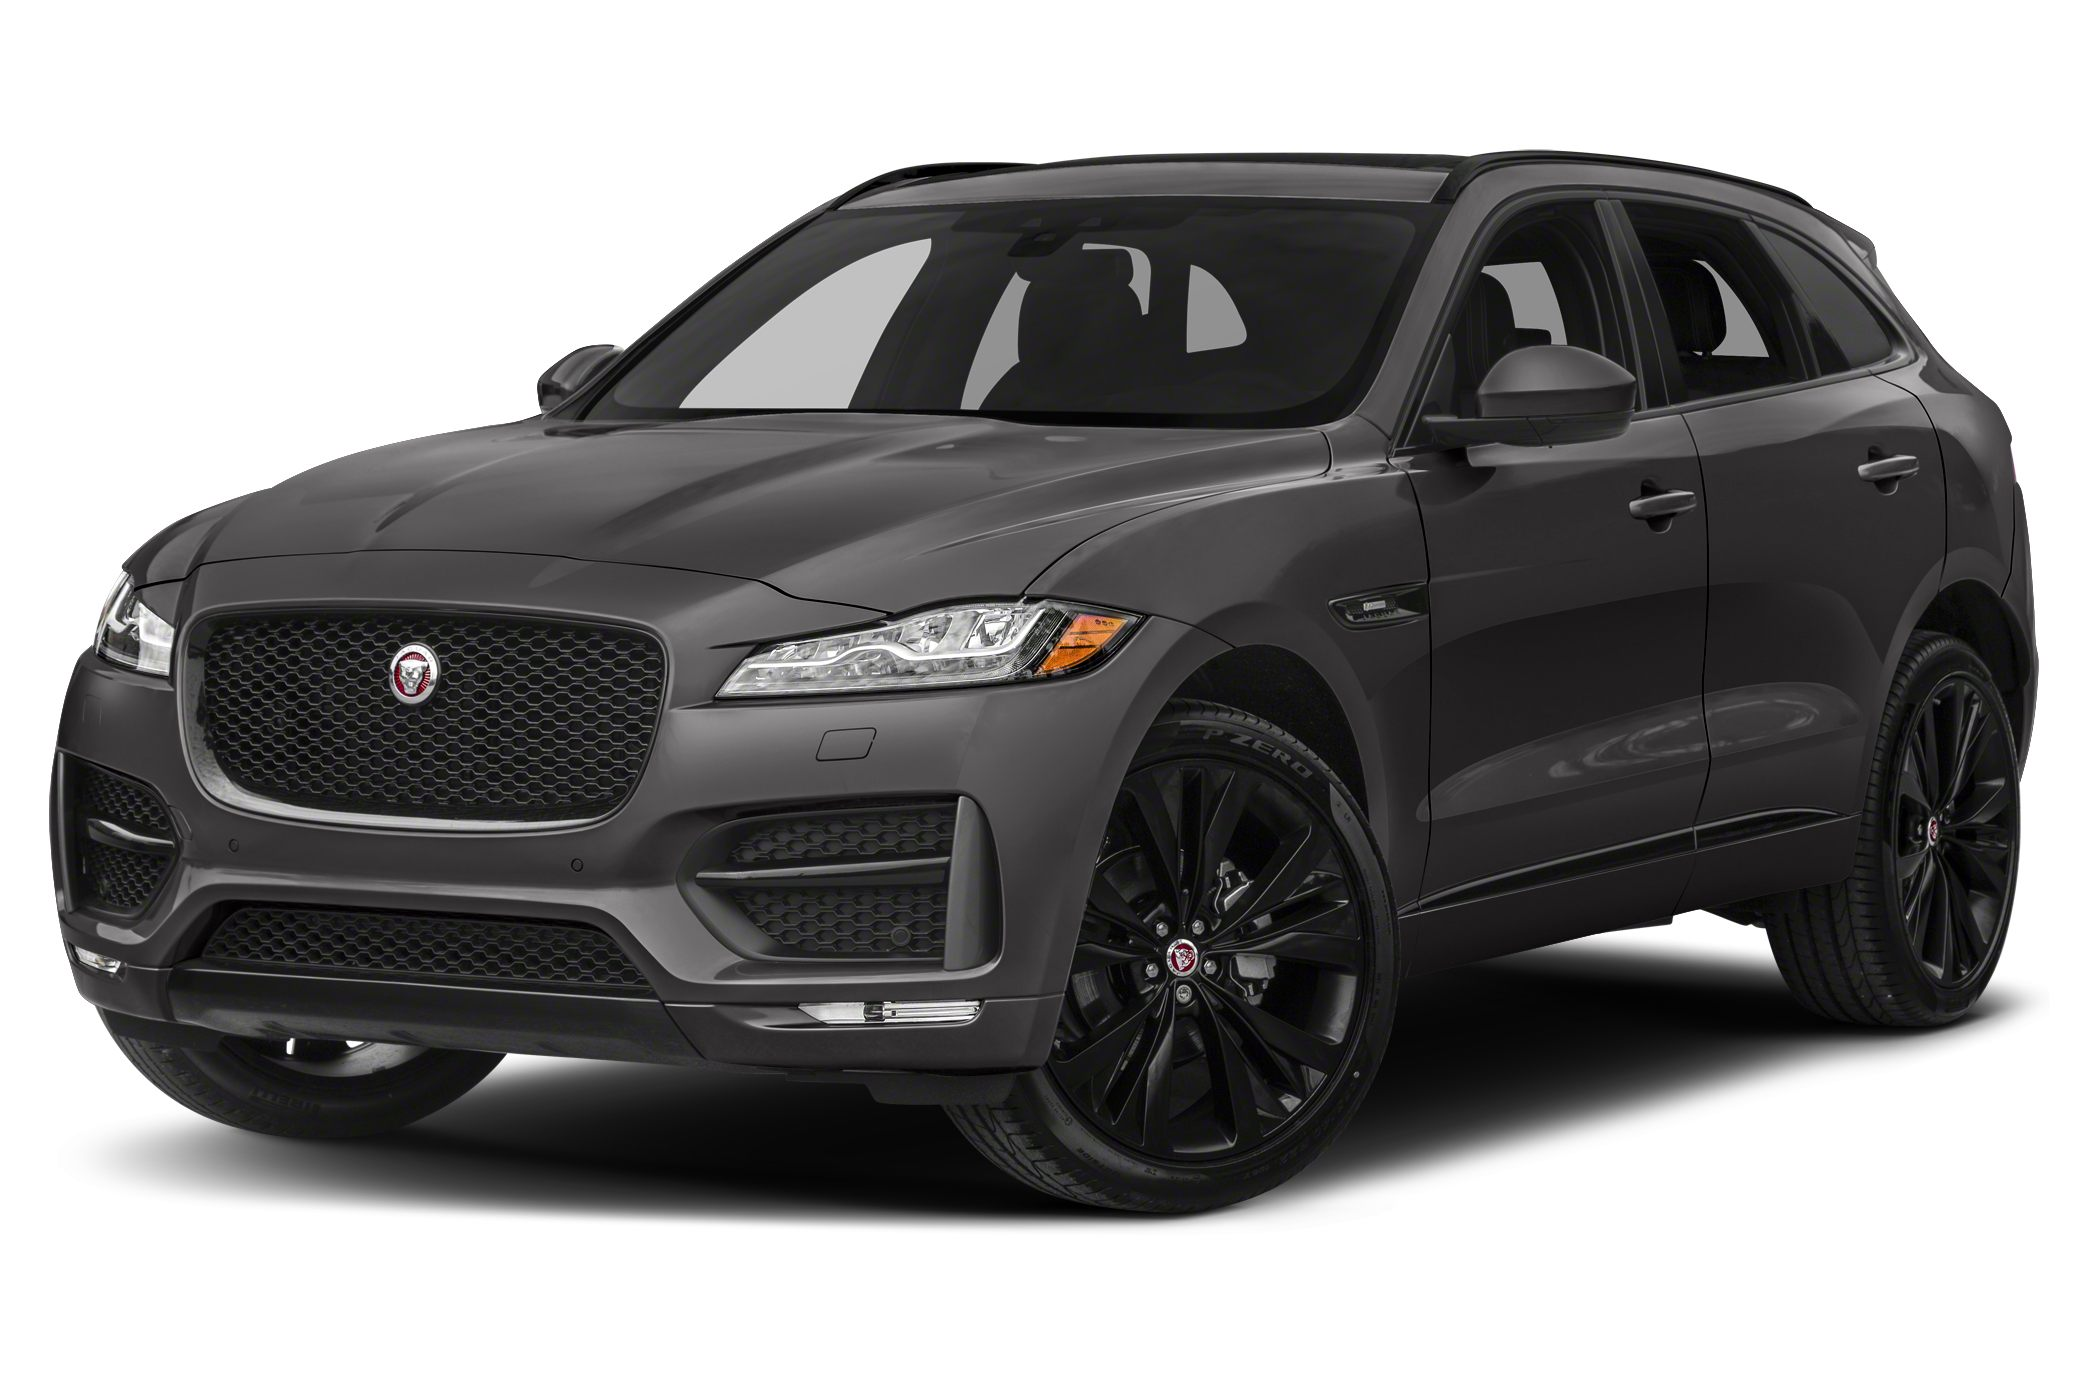 2017 Jaguar F PACE 20d R Sport All wheel Drive Specs and Prices